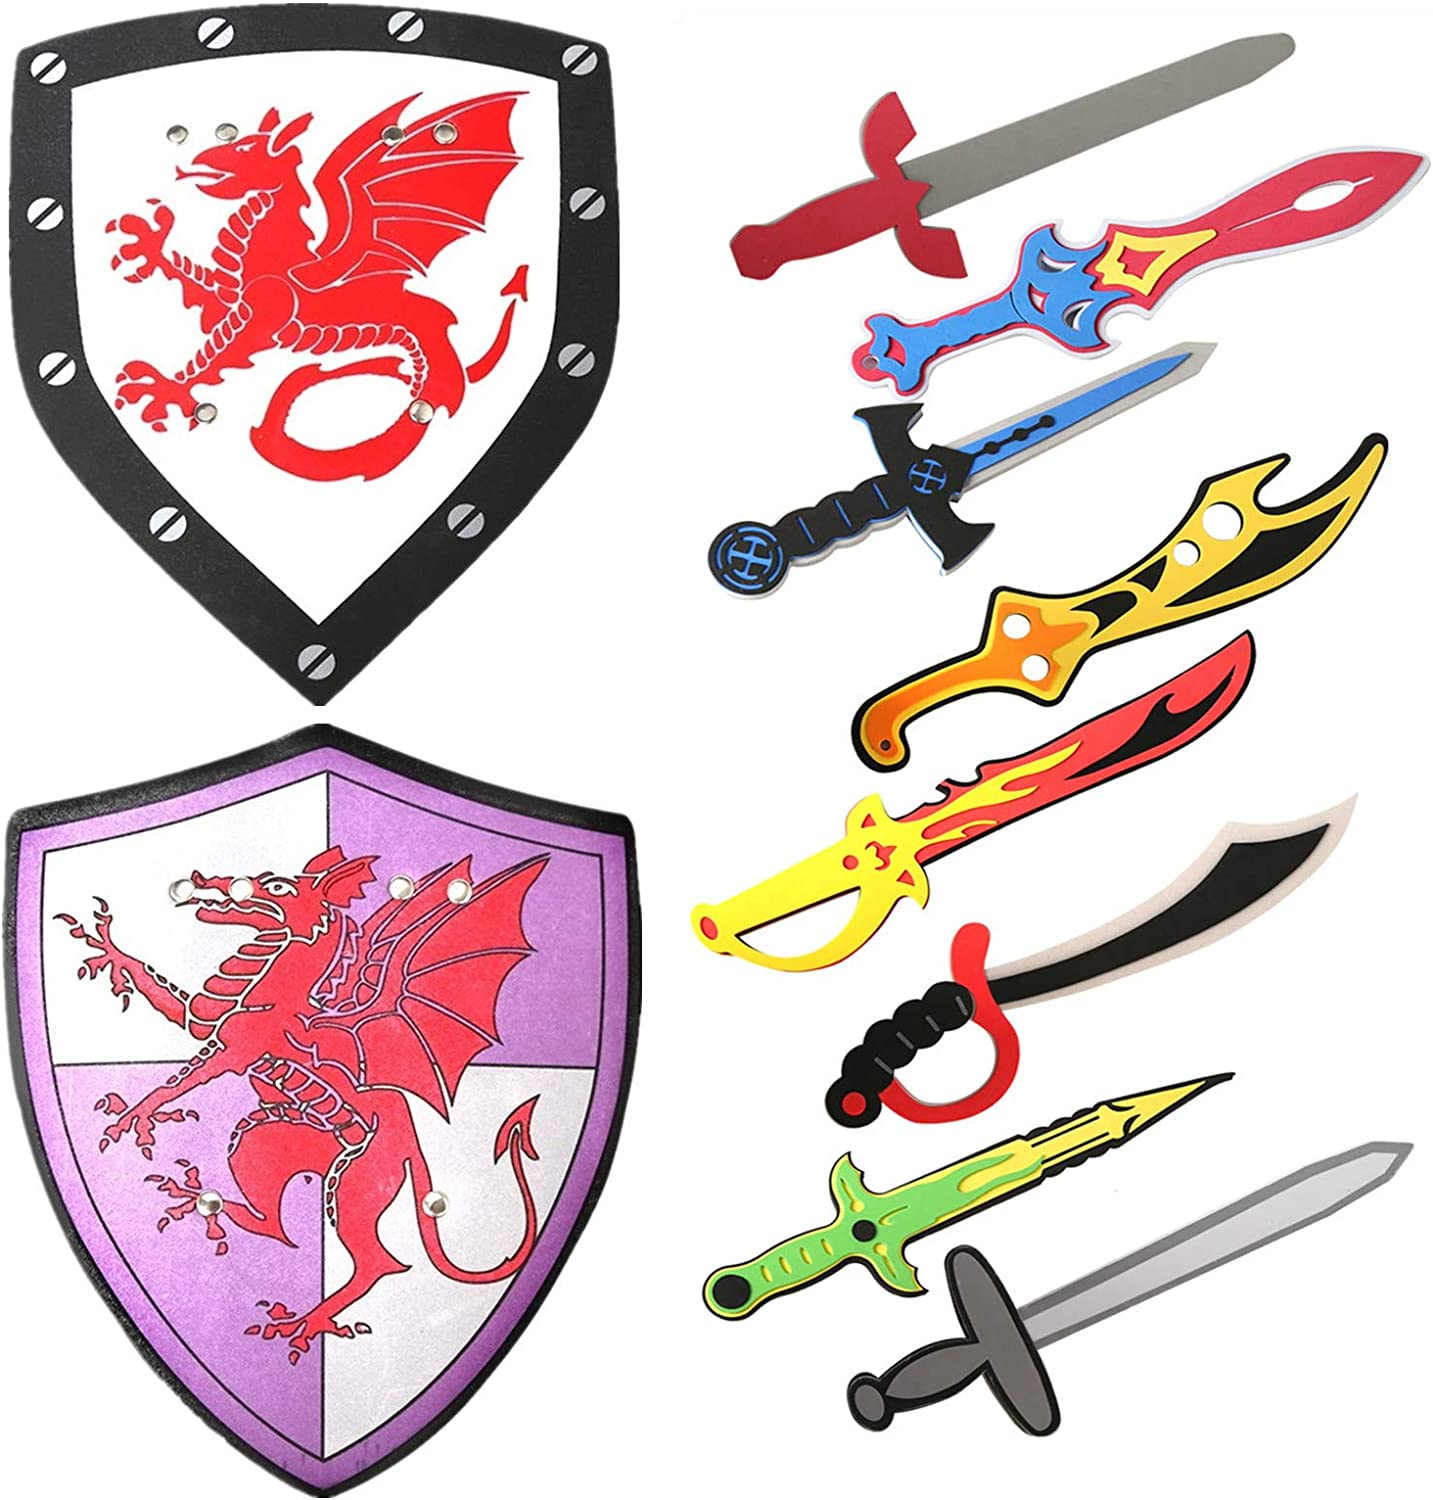 A886 Toy Plastic Sword and Shield Set Kids Medieval Viking History Book Week